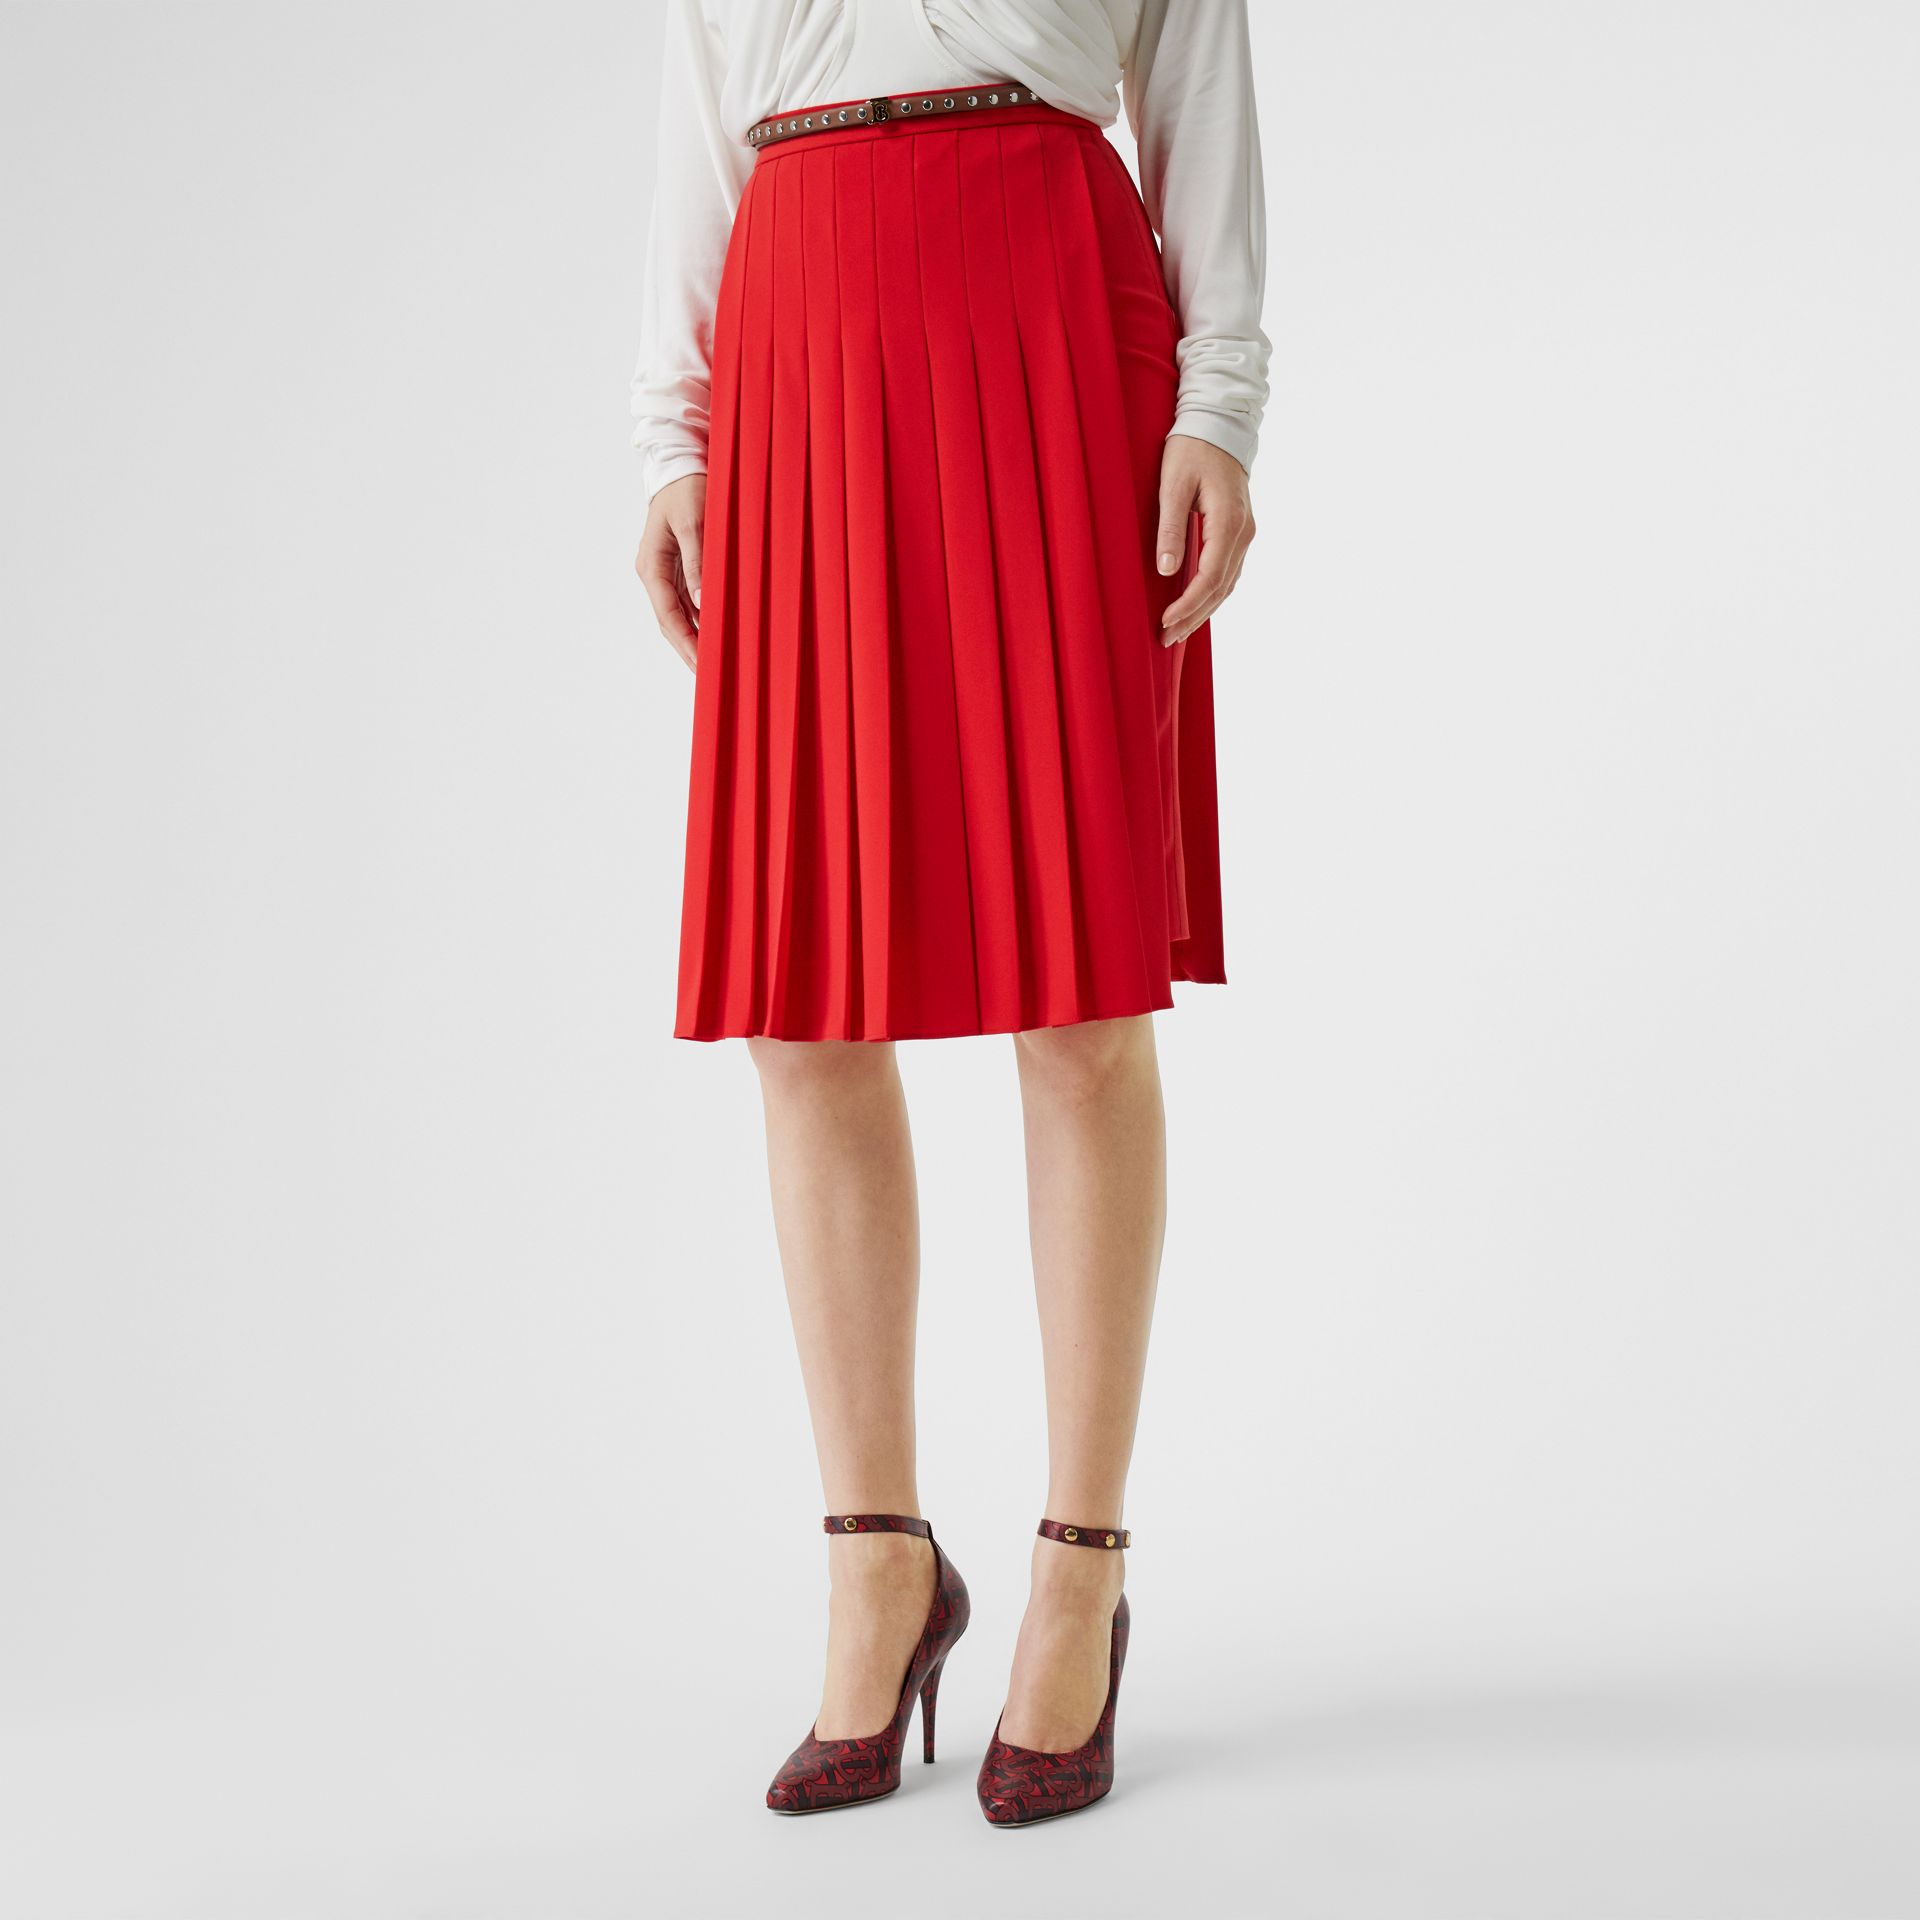 Stretch Cady Pleated Skirt in Bright Red - Women | Burberry Australia - gallery image 4